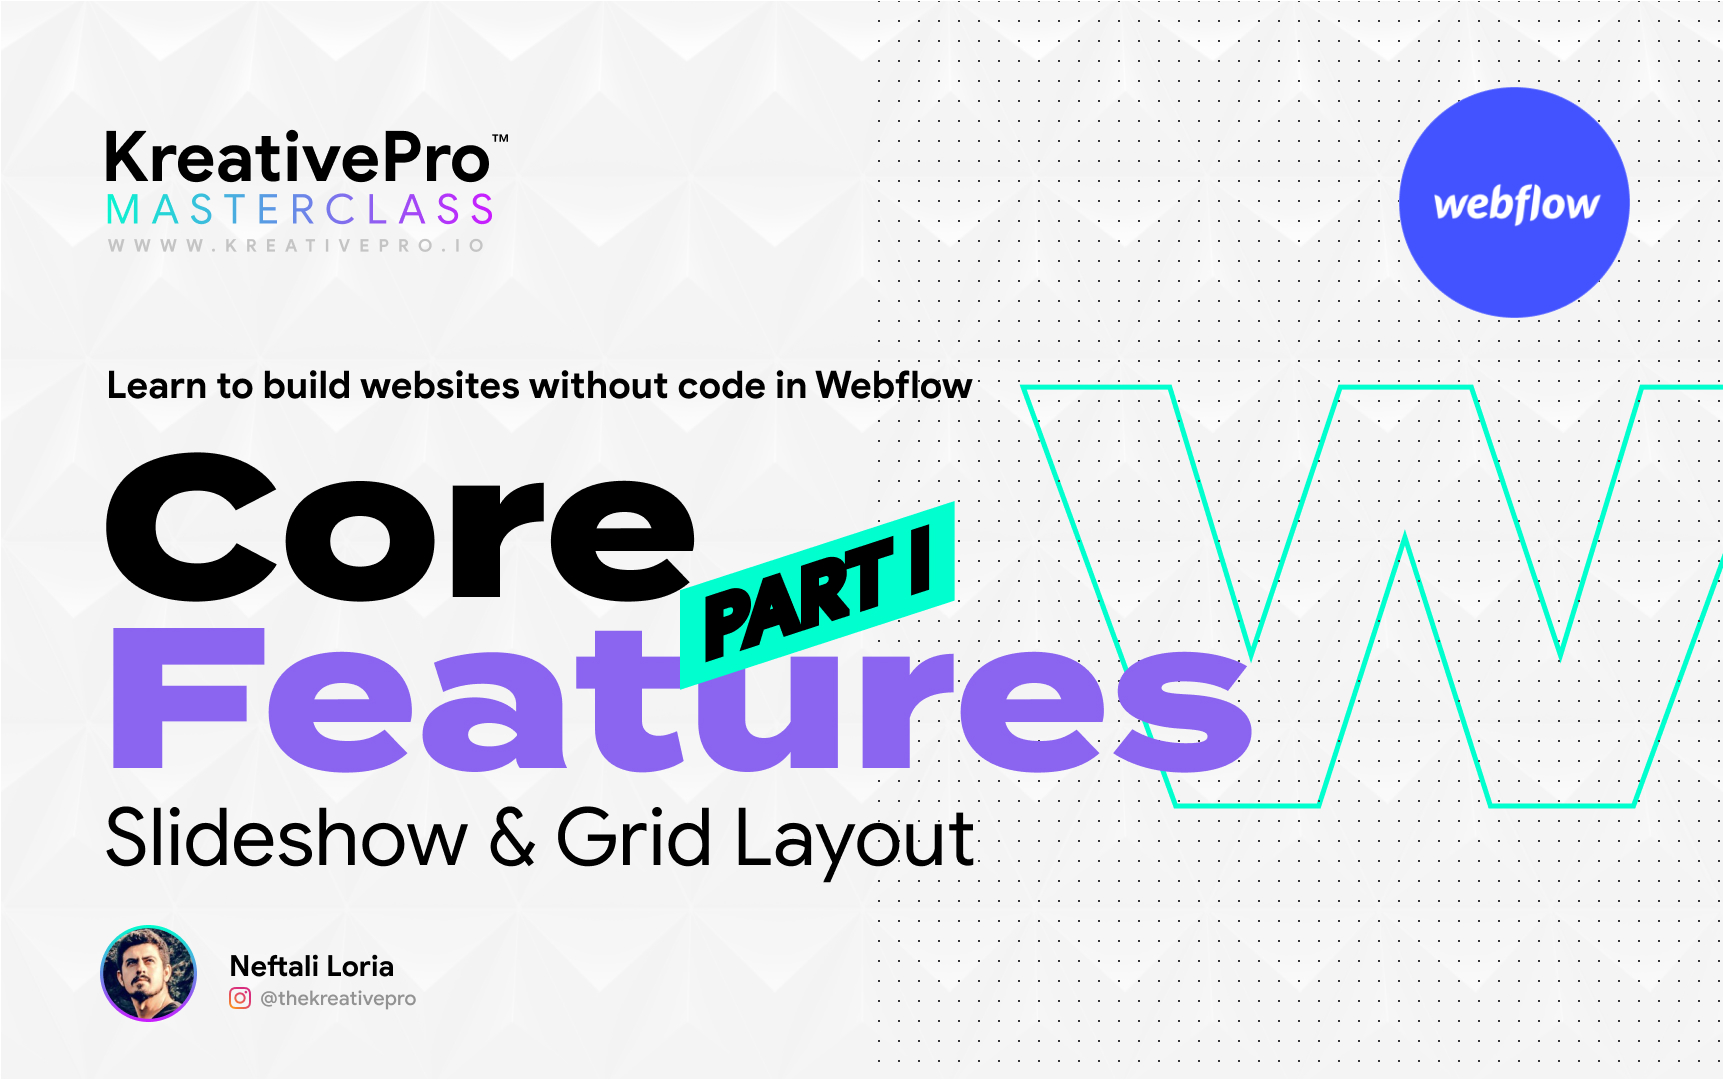 Webflow 3.4 - Features Part I: Slideshow and Grid